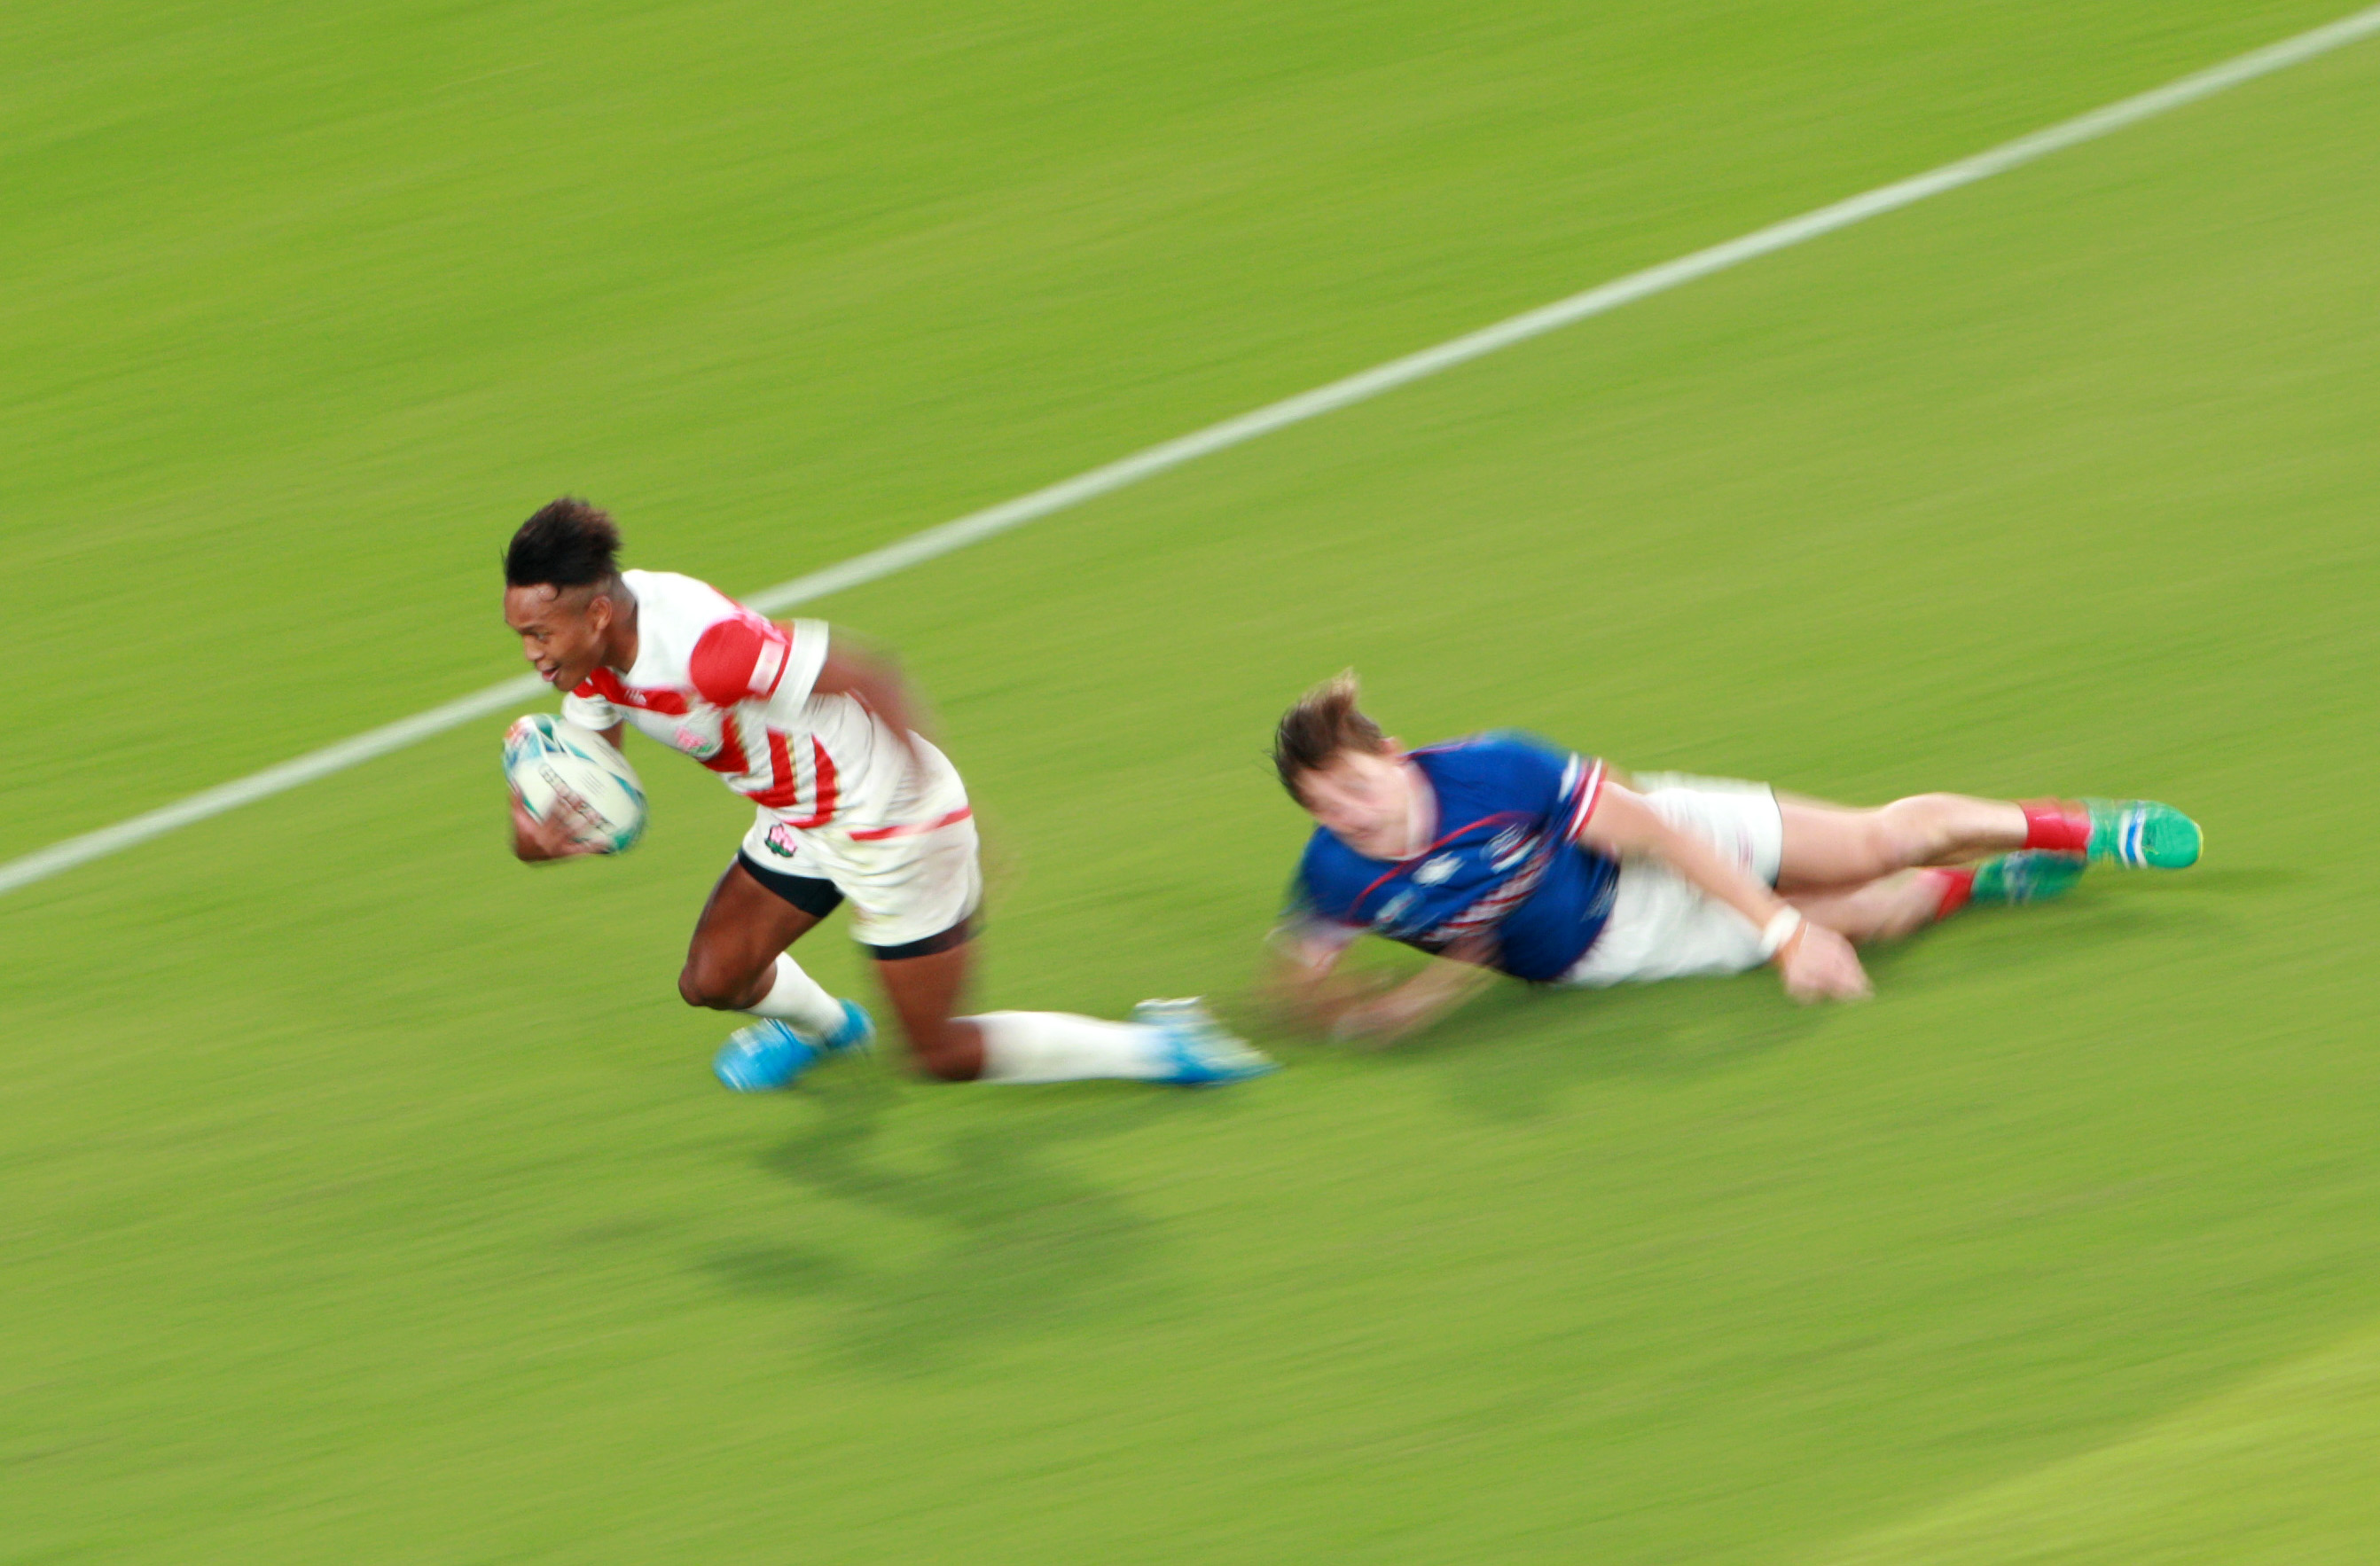 Kotaro Matsushima scores his third try of the match against Russia.